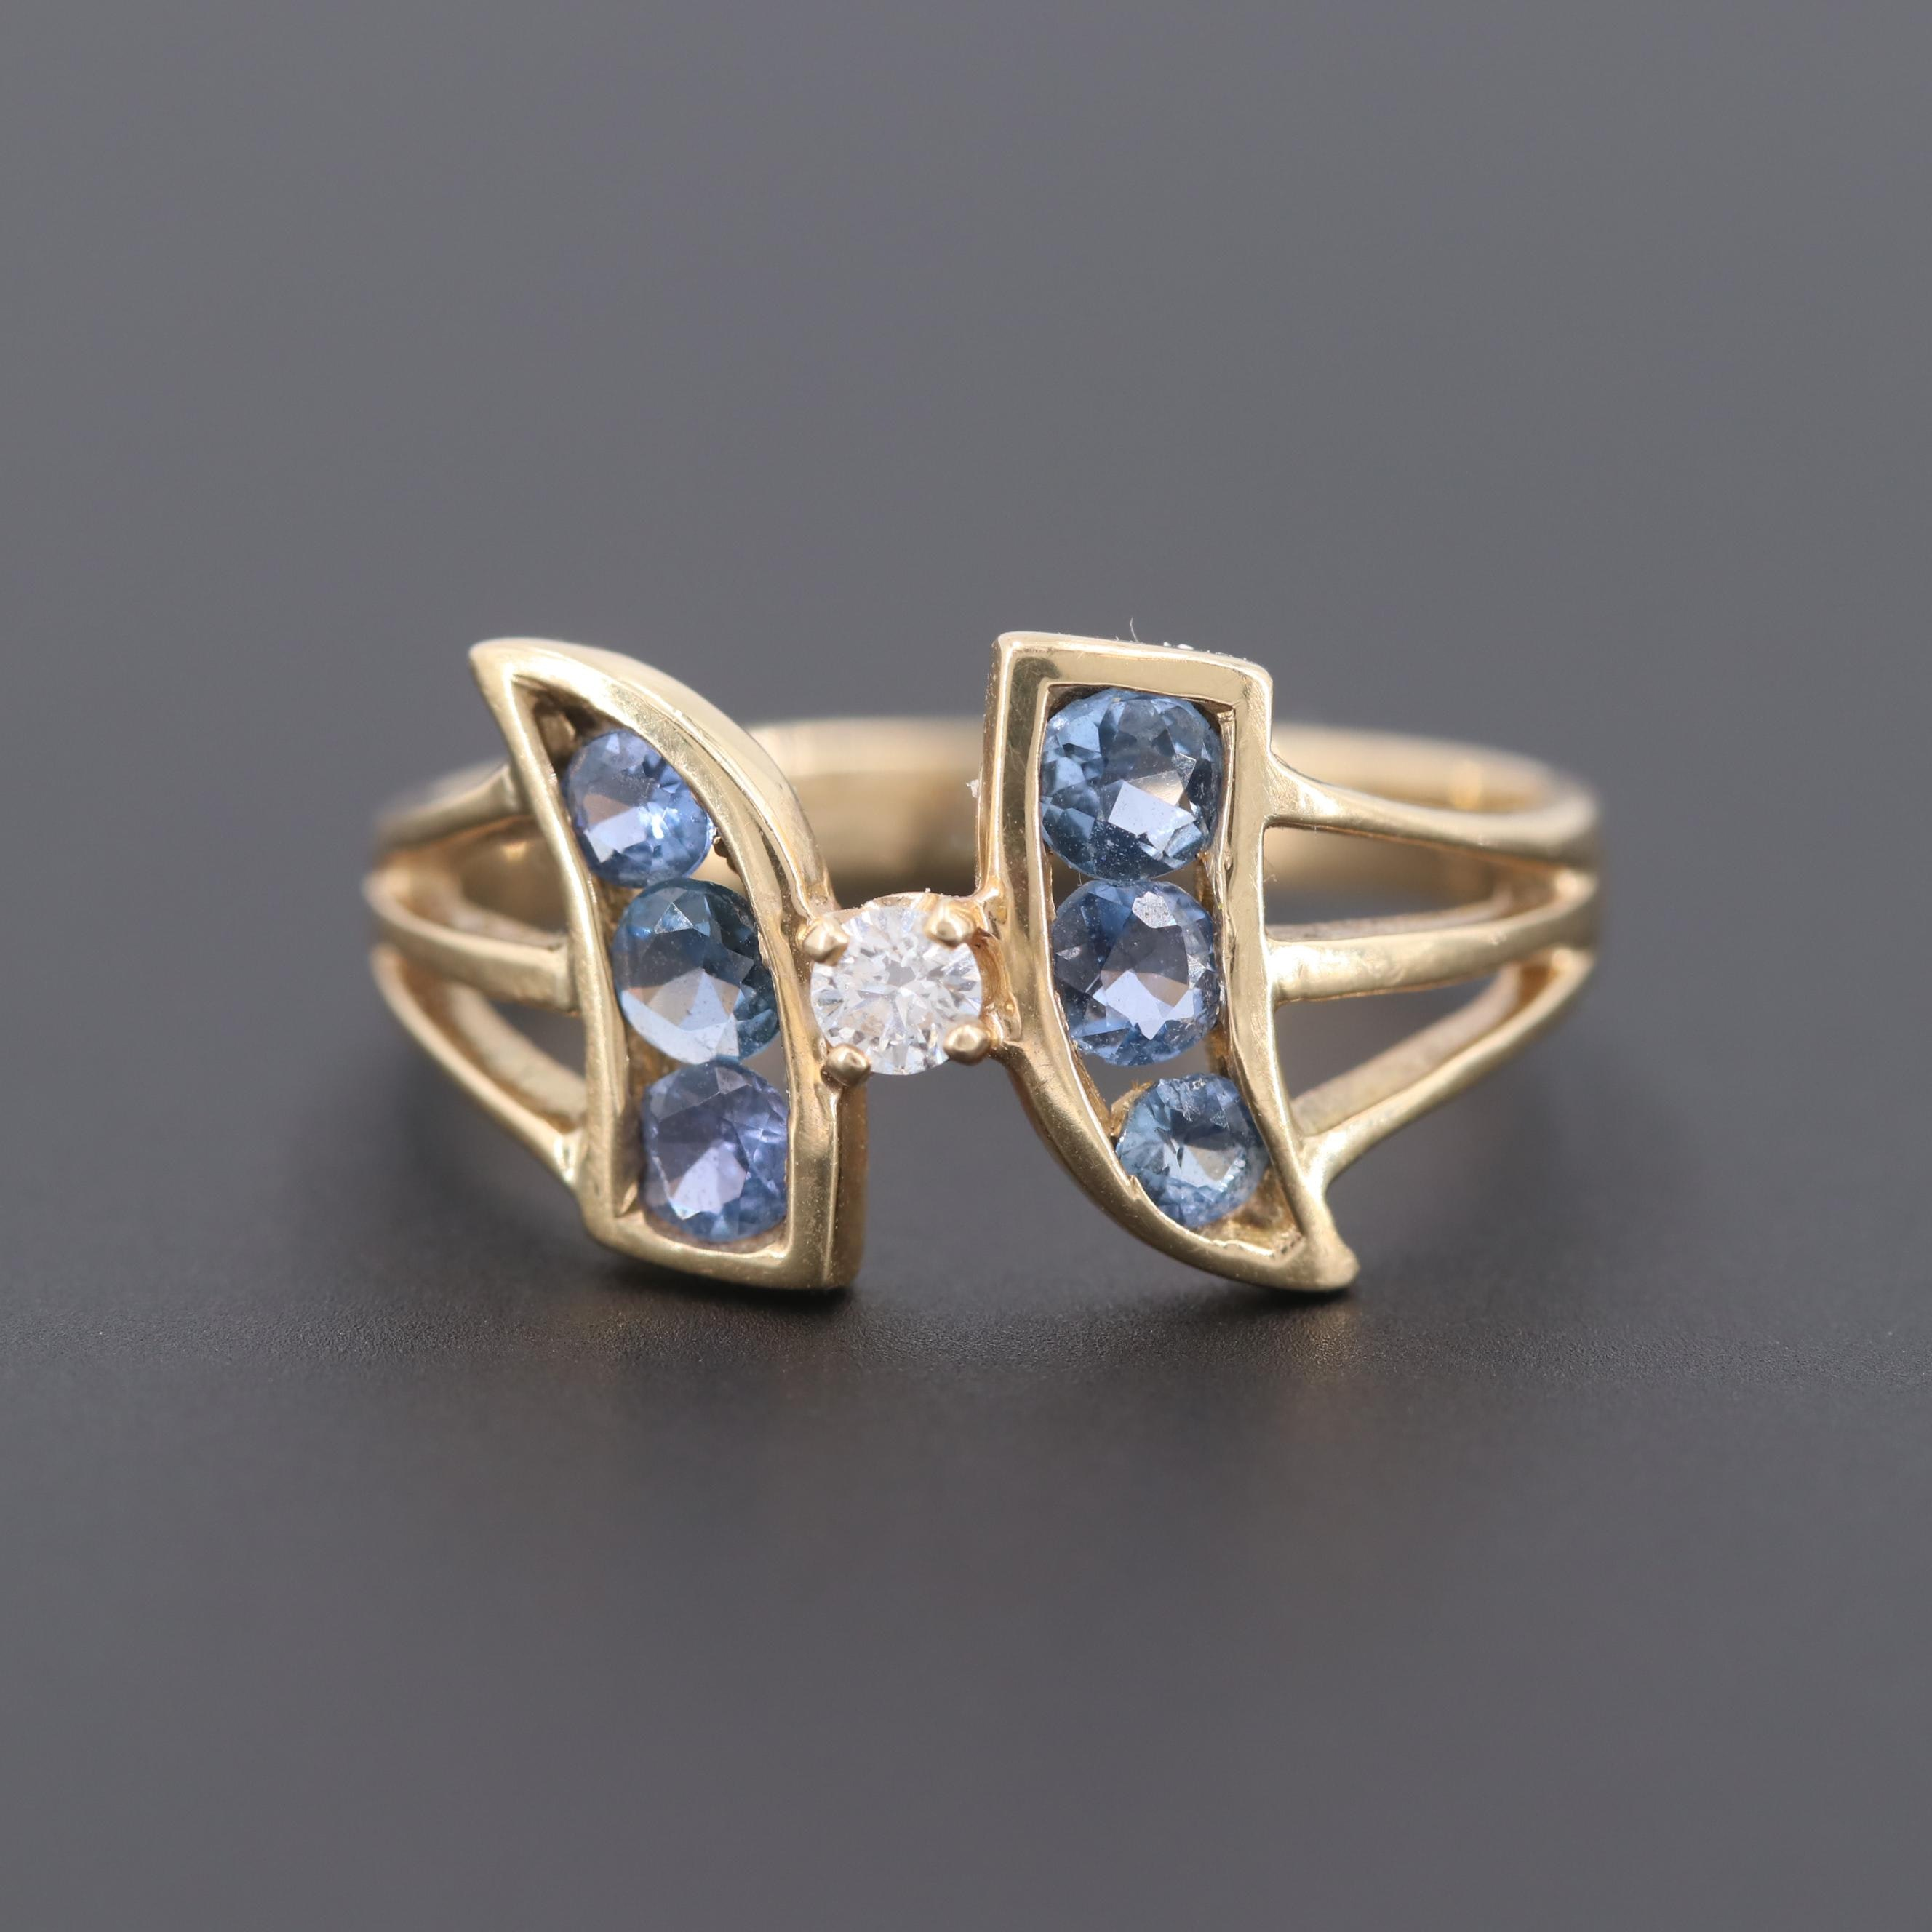 Vintage 14K Yellow Gold Diamond and Sapphire Ring